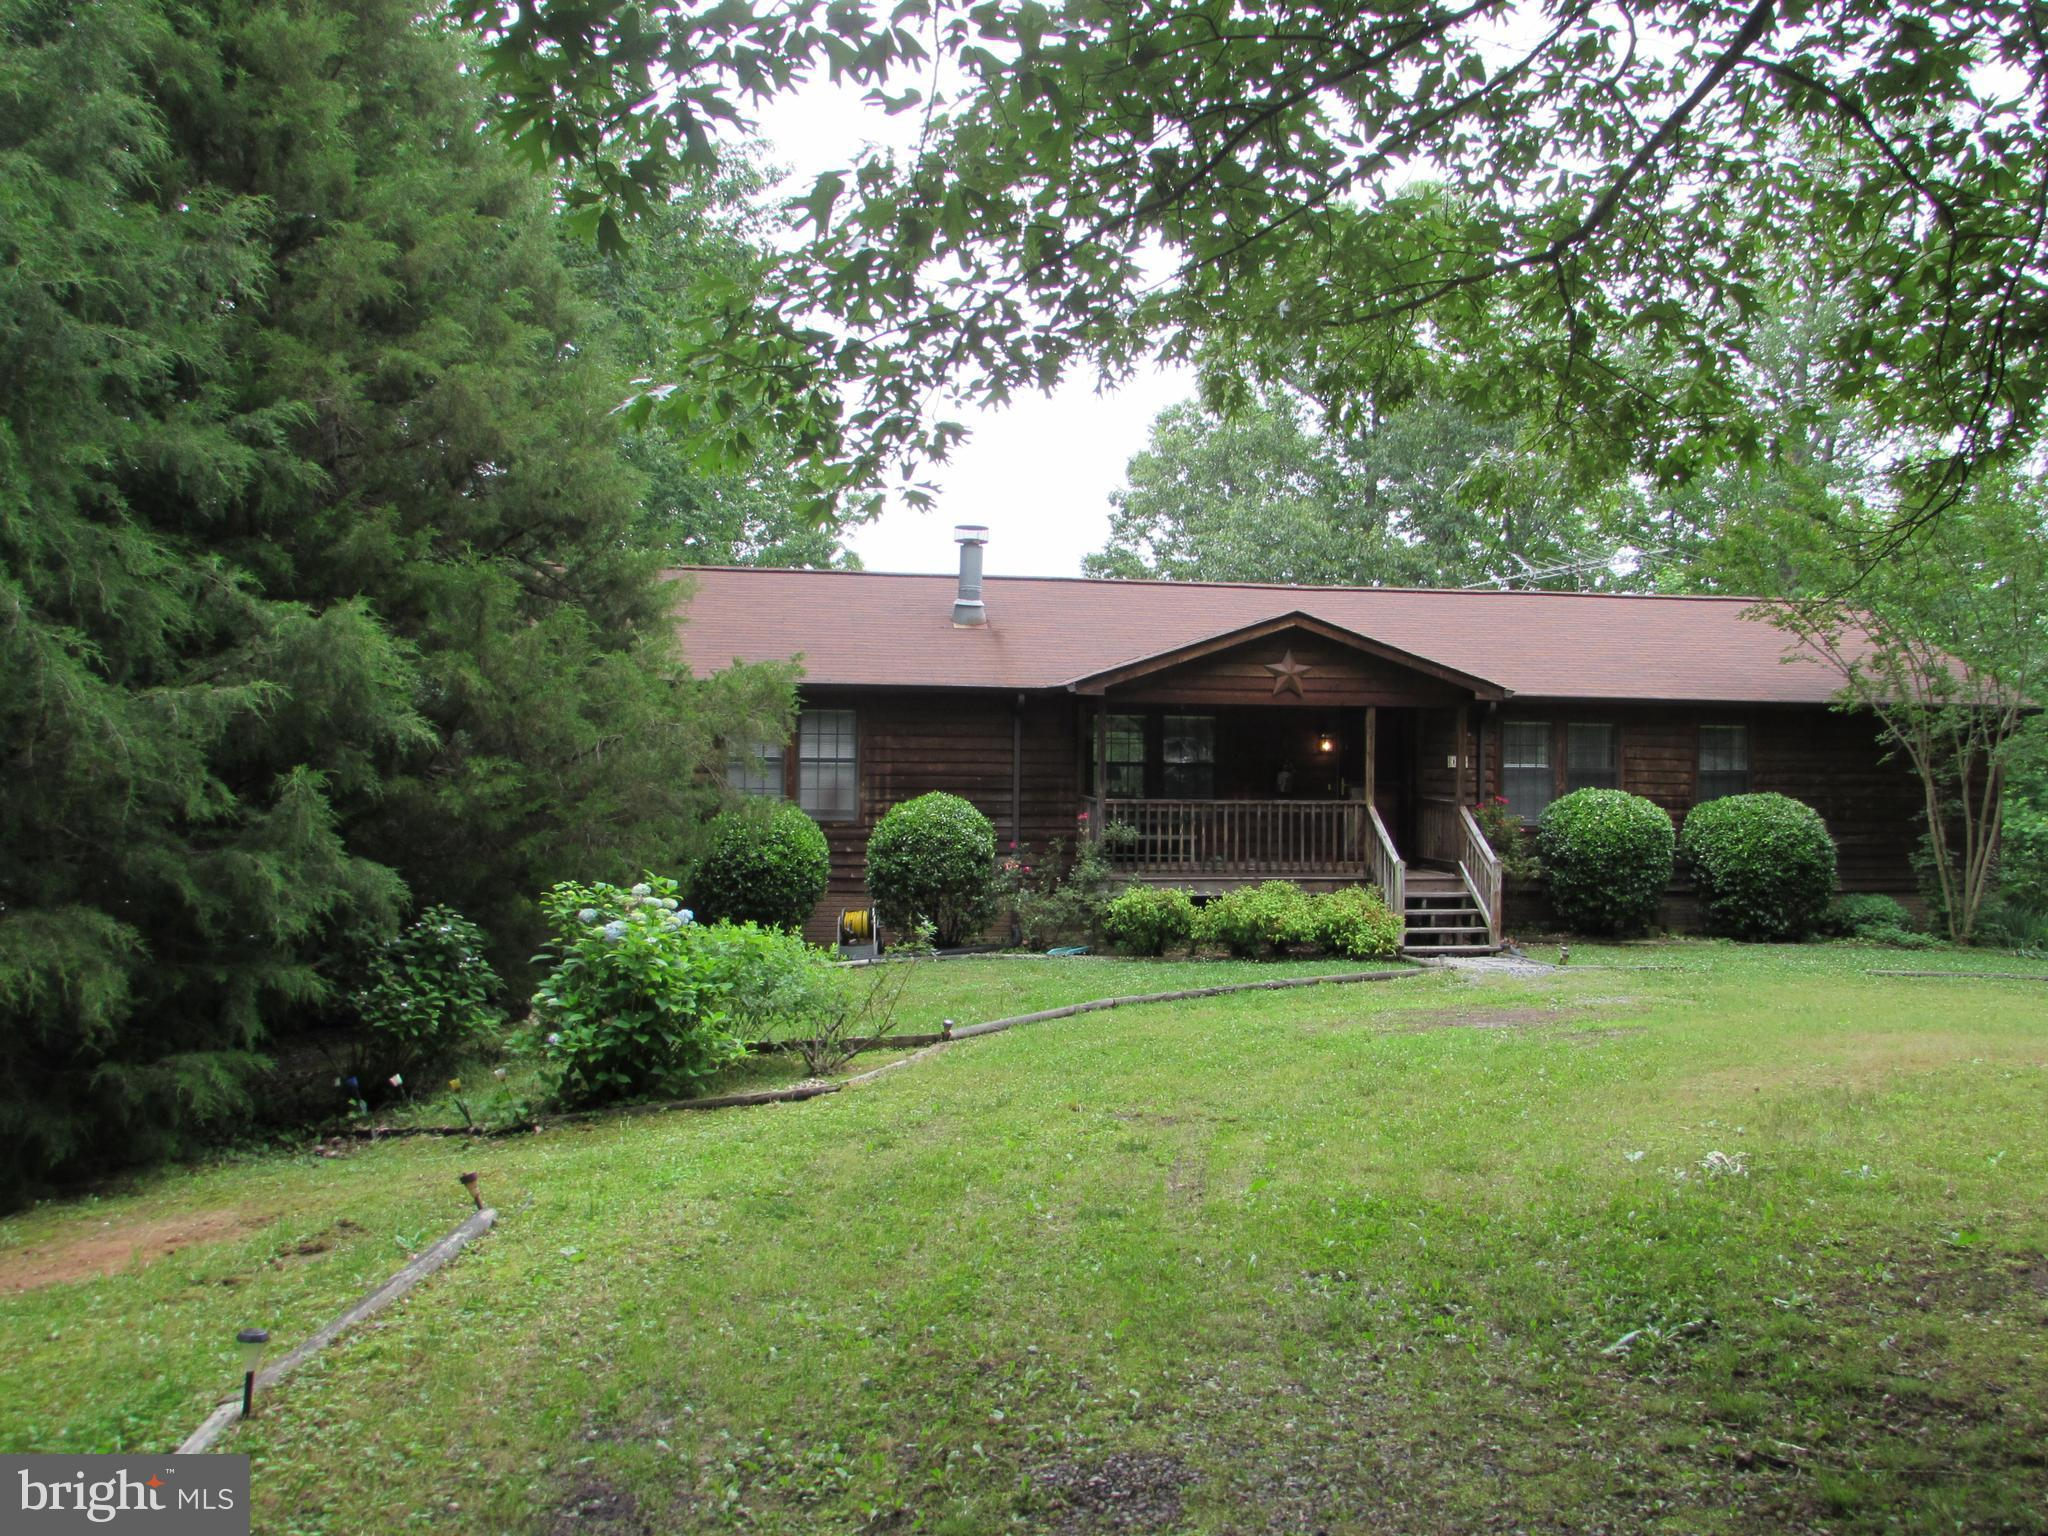 66 OLD PROSPECT LANDING ROAD, MONTROSS, VA 22520